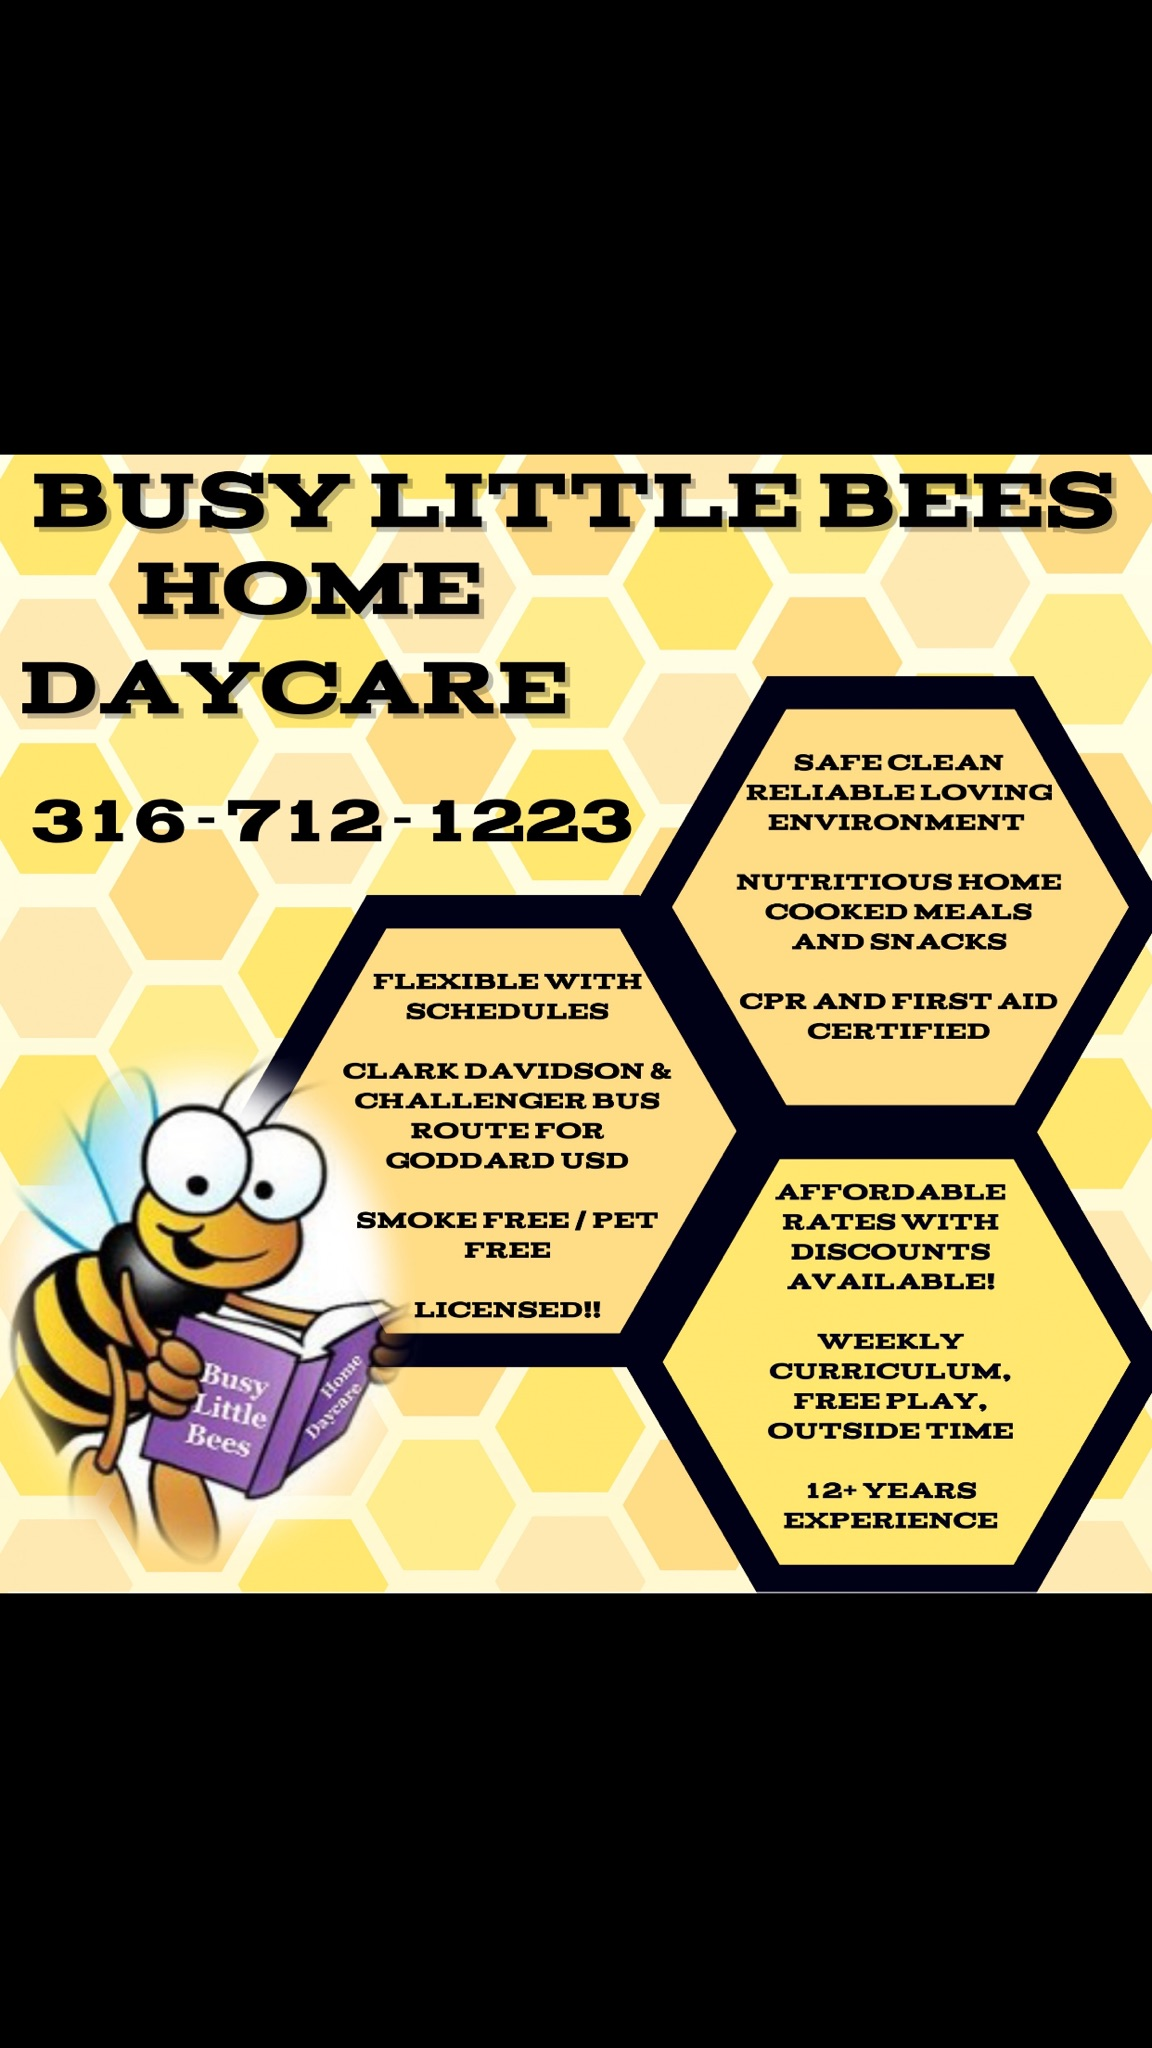 Busy Little Bees Home Daycare